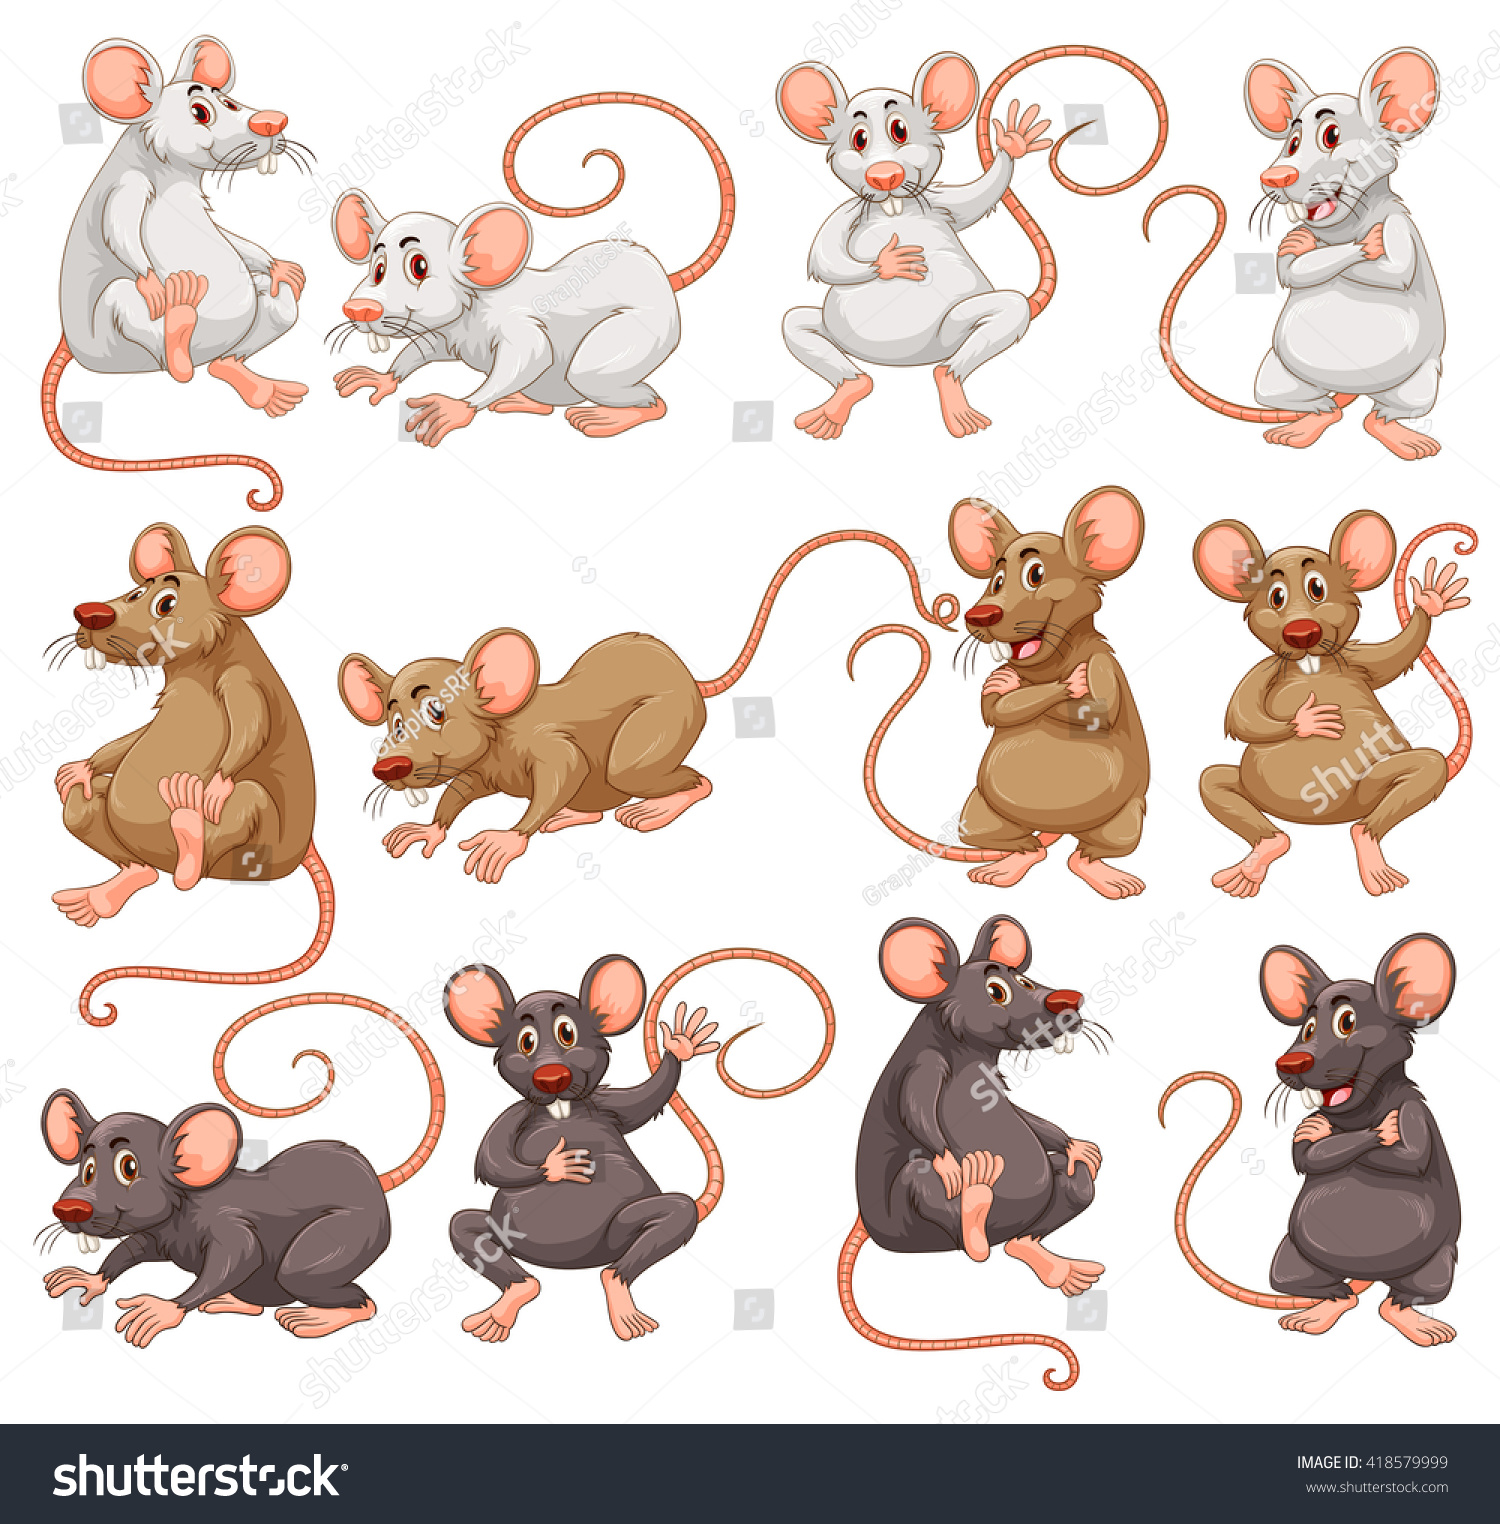 mouse different fur color illustration stock vector 418579999